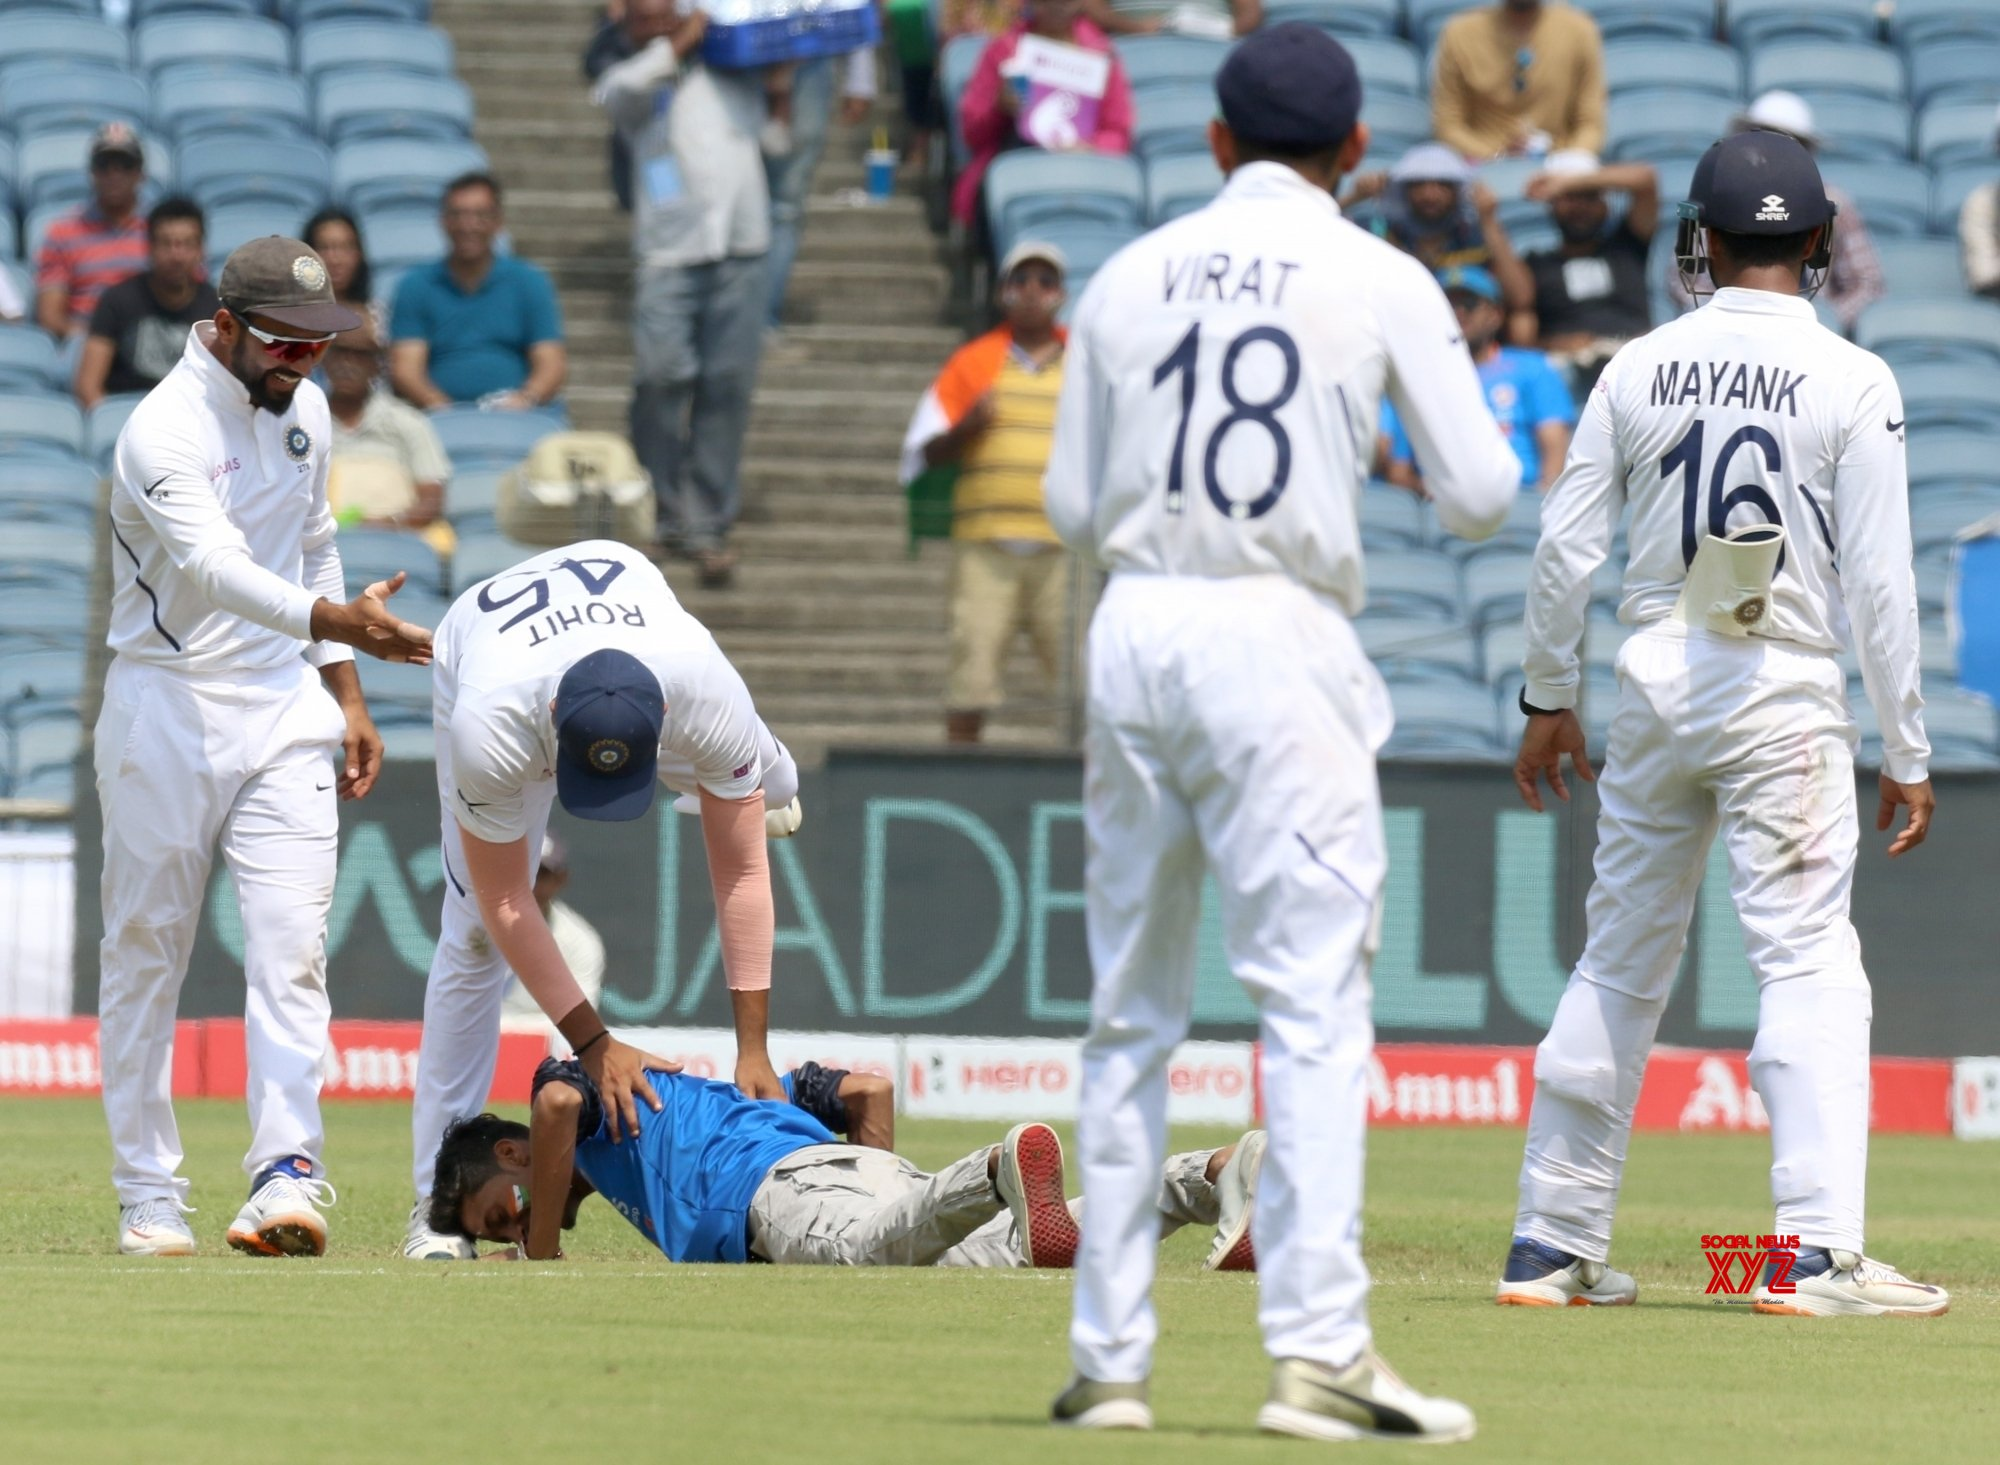 Pune: 2nd Test - India Vs South Africa - Day 3 (Batch - 11) #Gallery